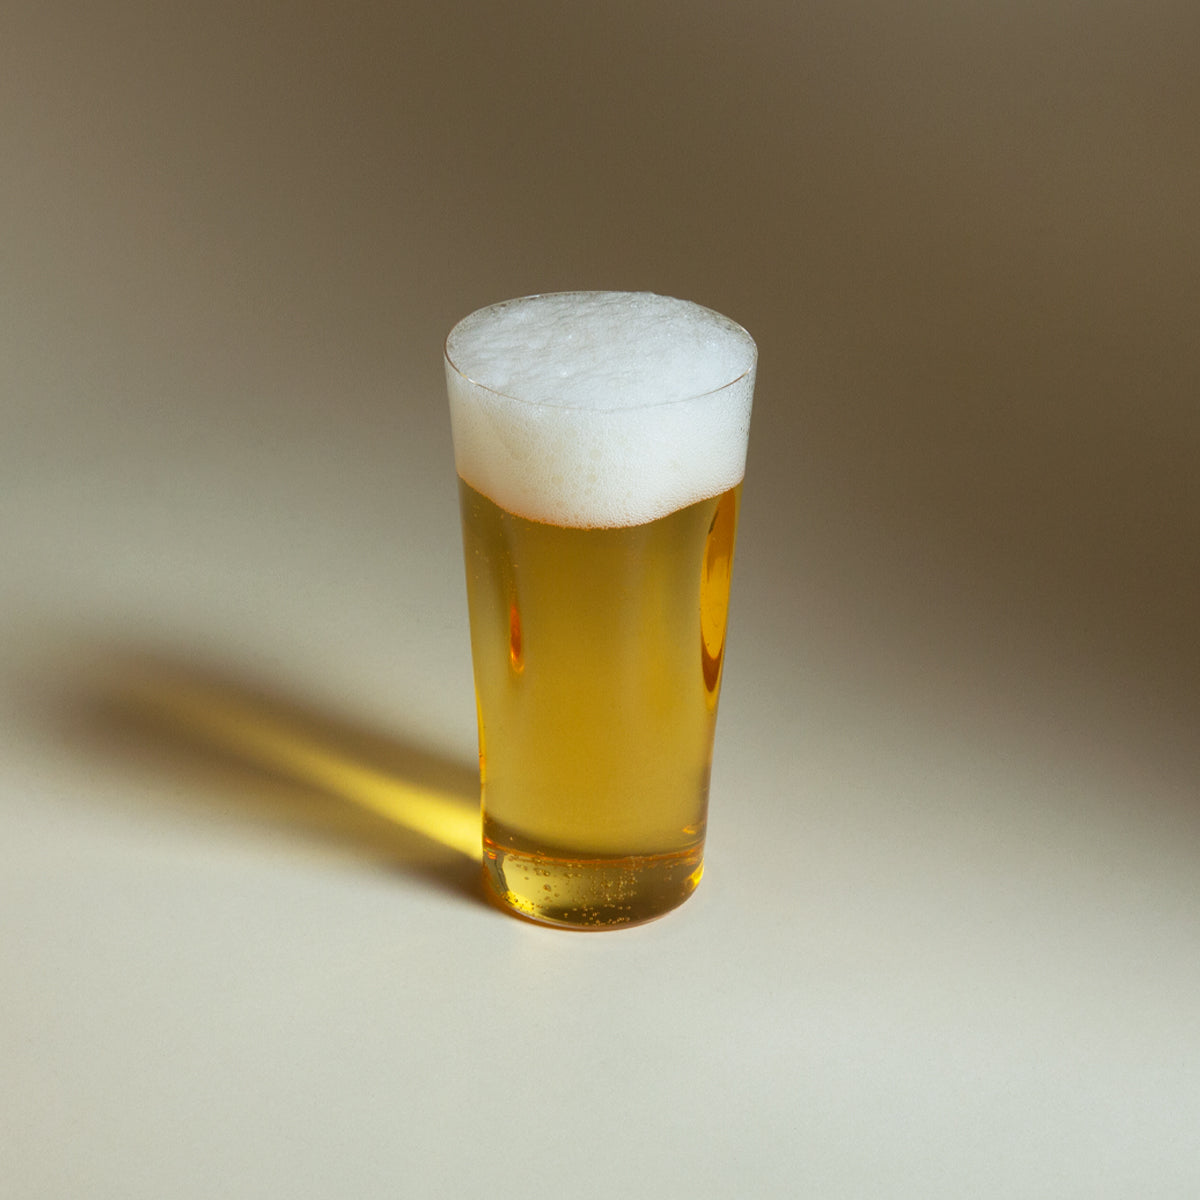 Usuhari Shiwa Beer Glass